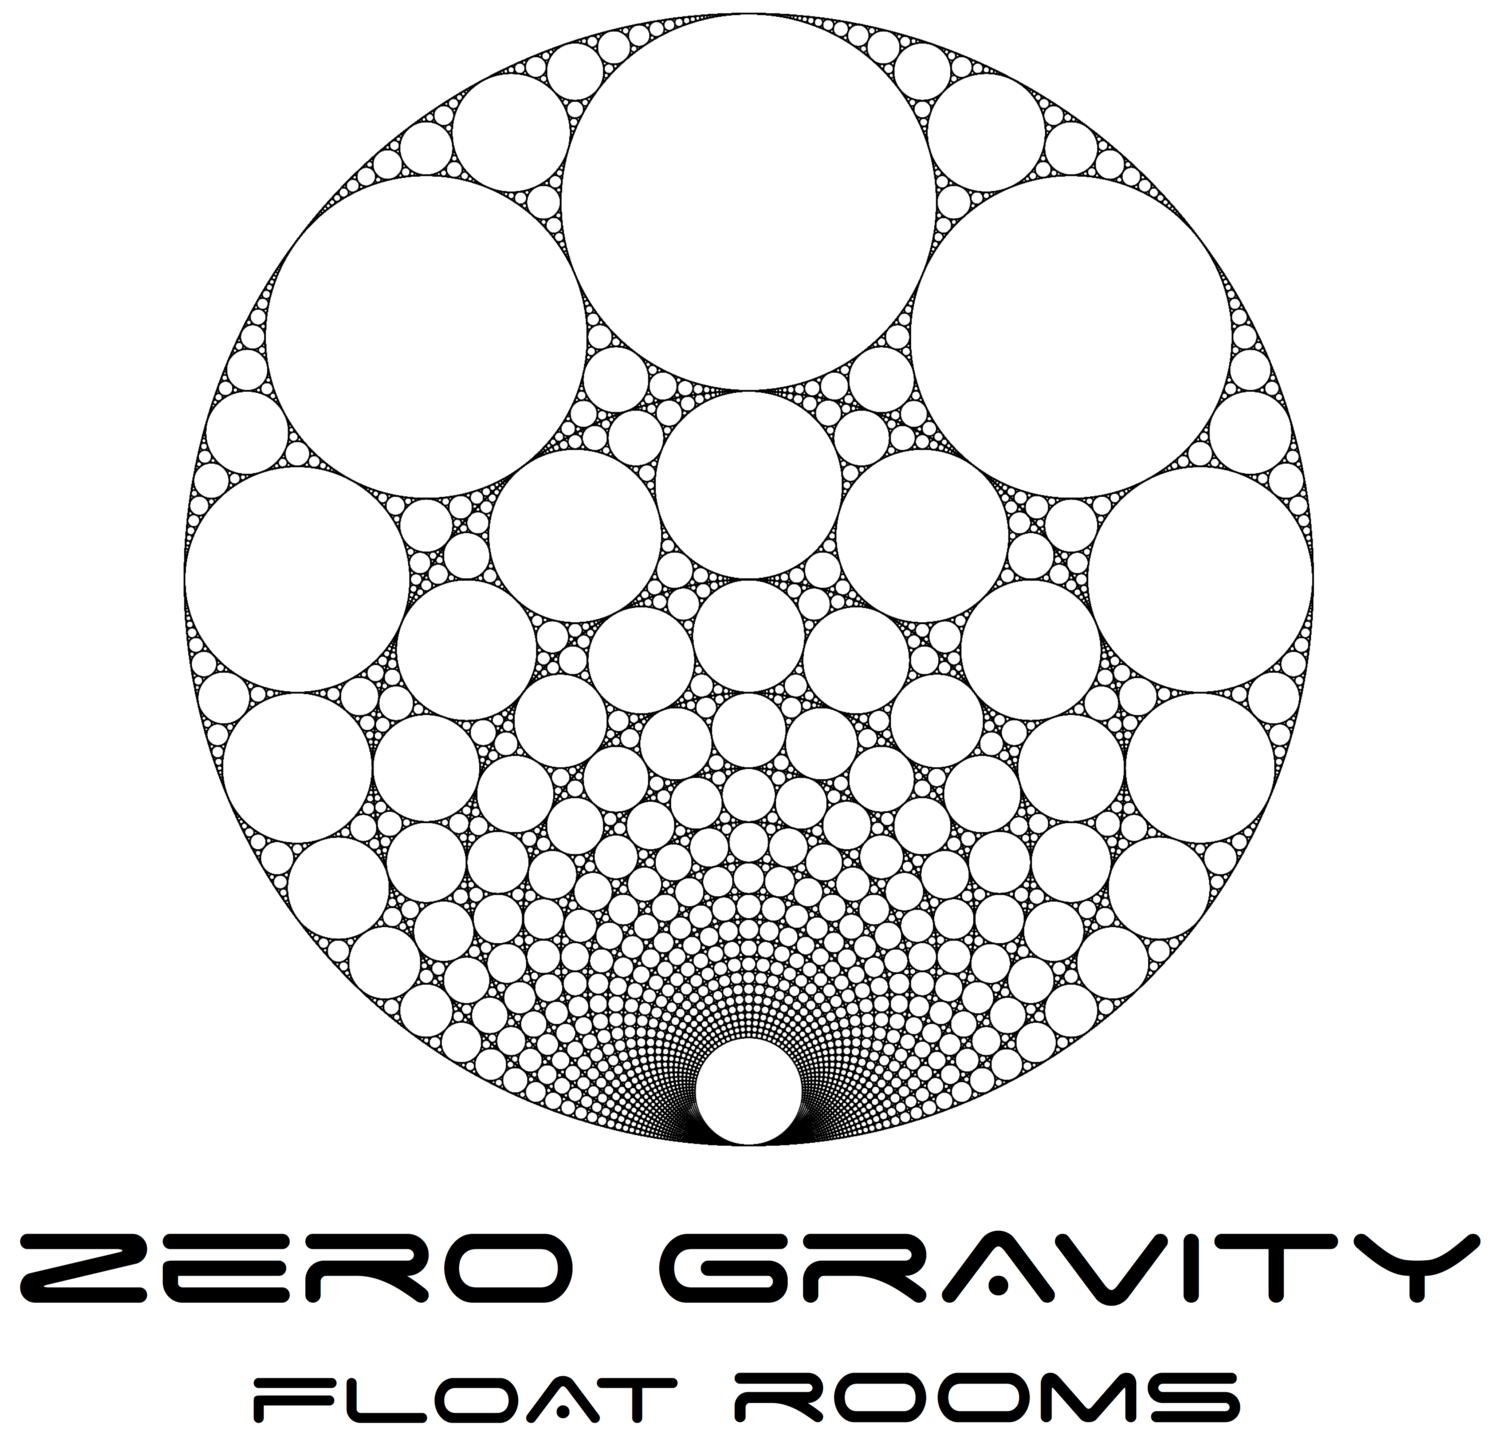 ZERO GRAVITY FLOAT ROOMS